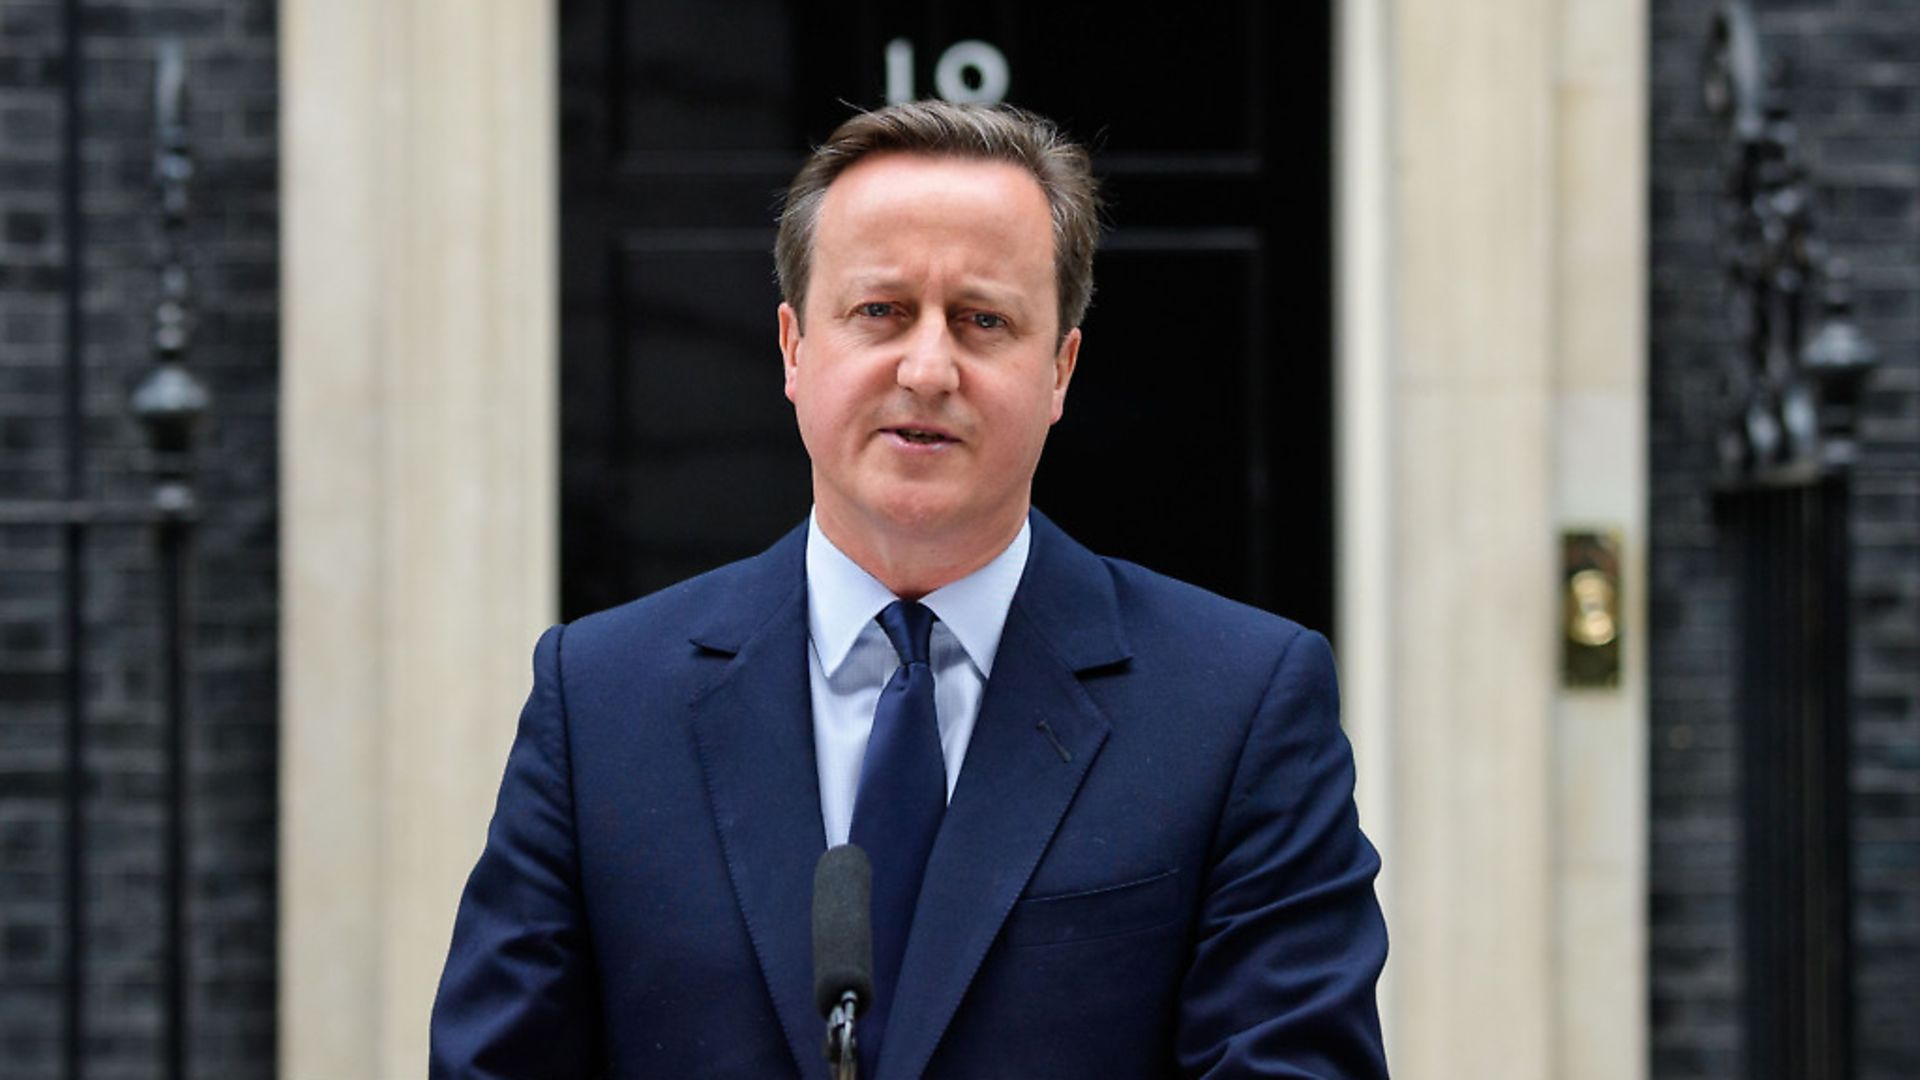 David Cameron at 10 Downing Street before the EU referendum. (Photograph: LEON NEAL/AFP/Getty Images) - Credit: AFP/Getty Images